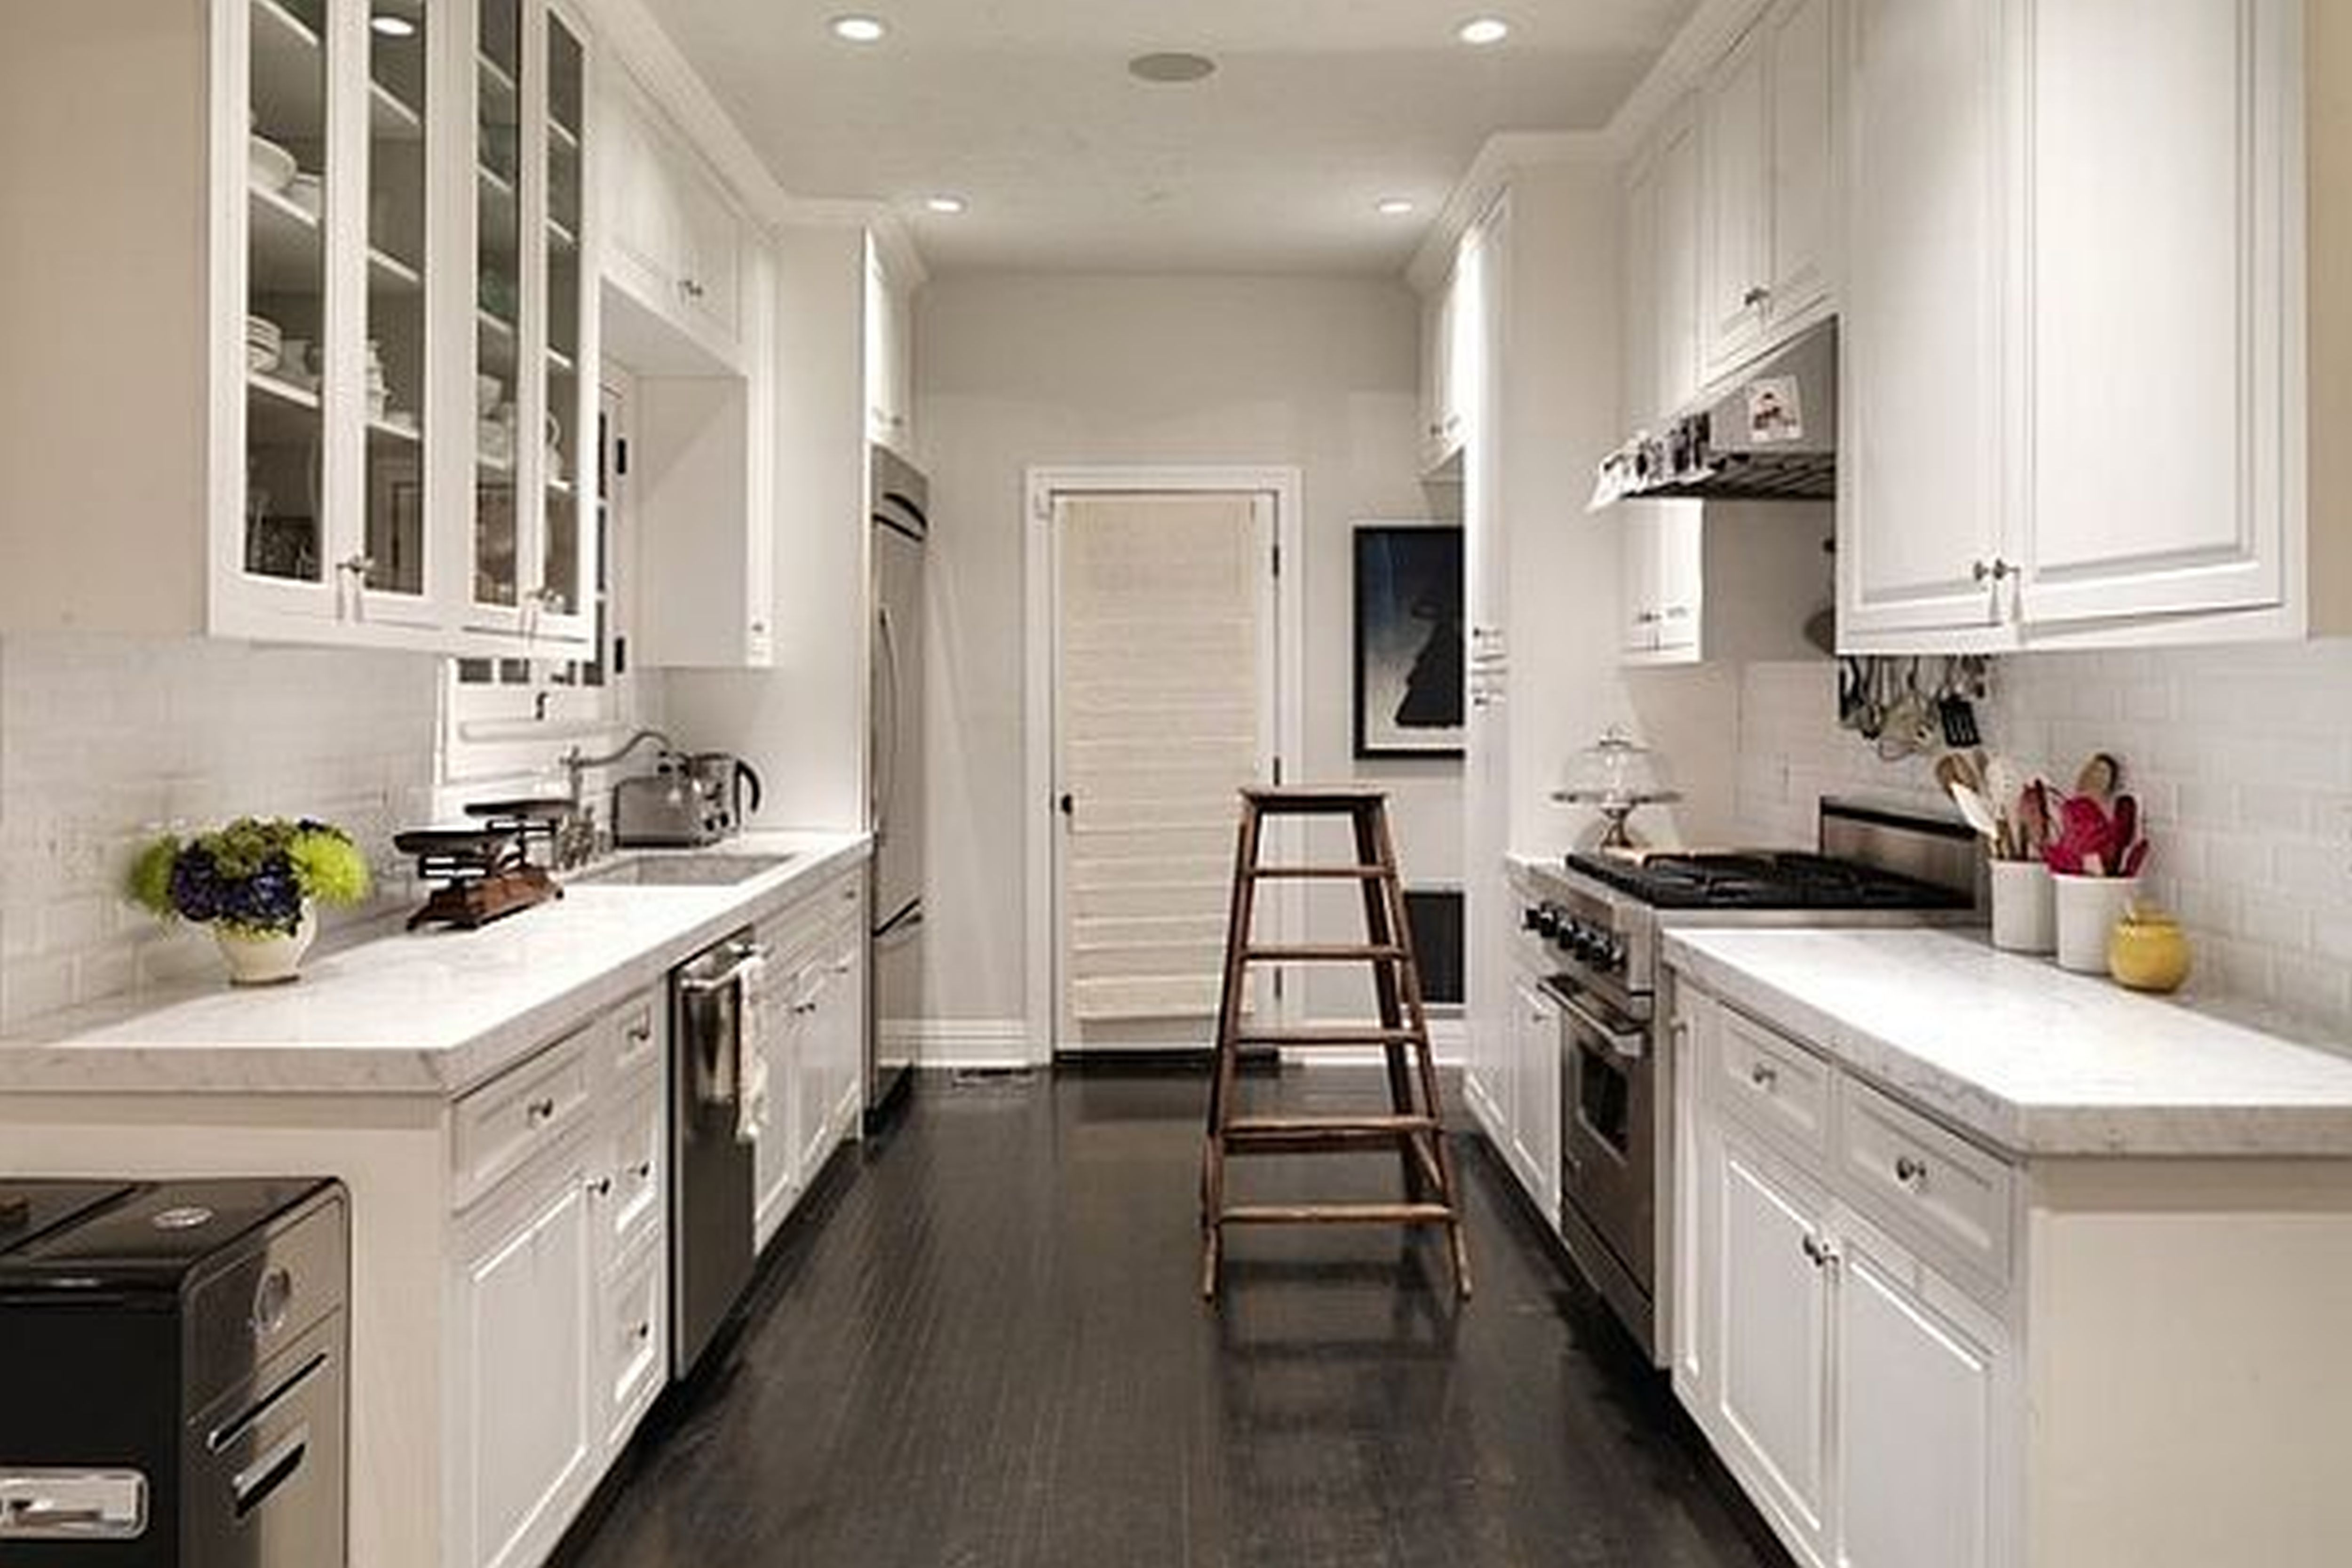 small galley kitchen remodel design ideas with photos of galley kitchen ideas gallery kitchen on kitchen ideas simple id=40171